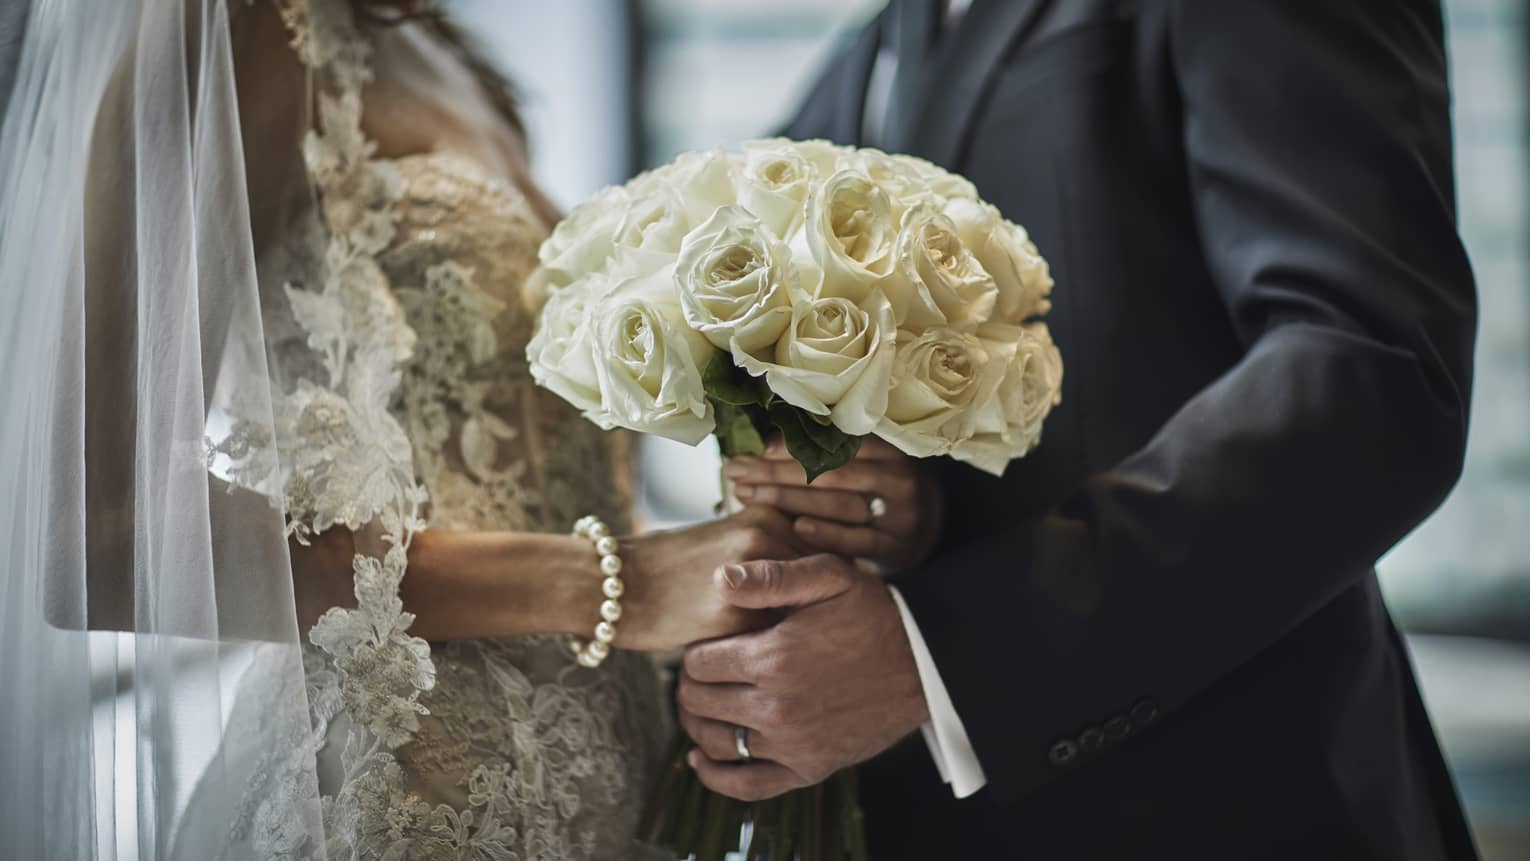 A close up of a bride in a lace gown and a groom in a gray suit hold the bride's bouquet of white roses together.